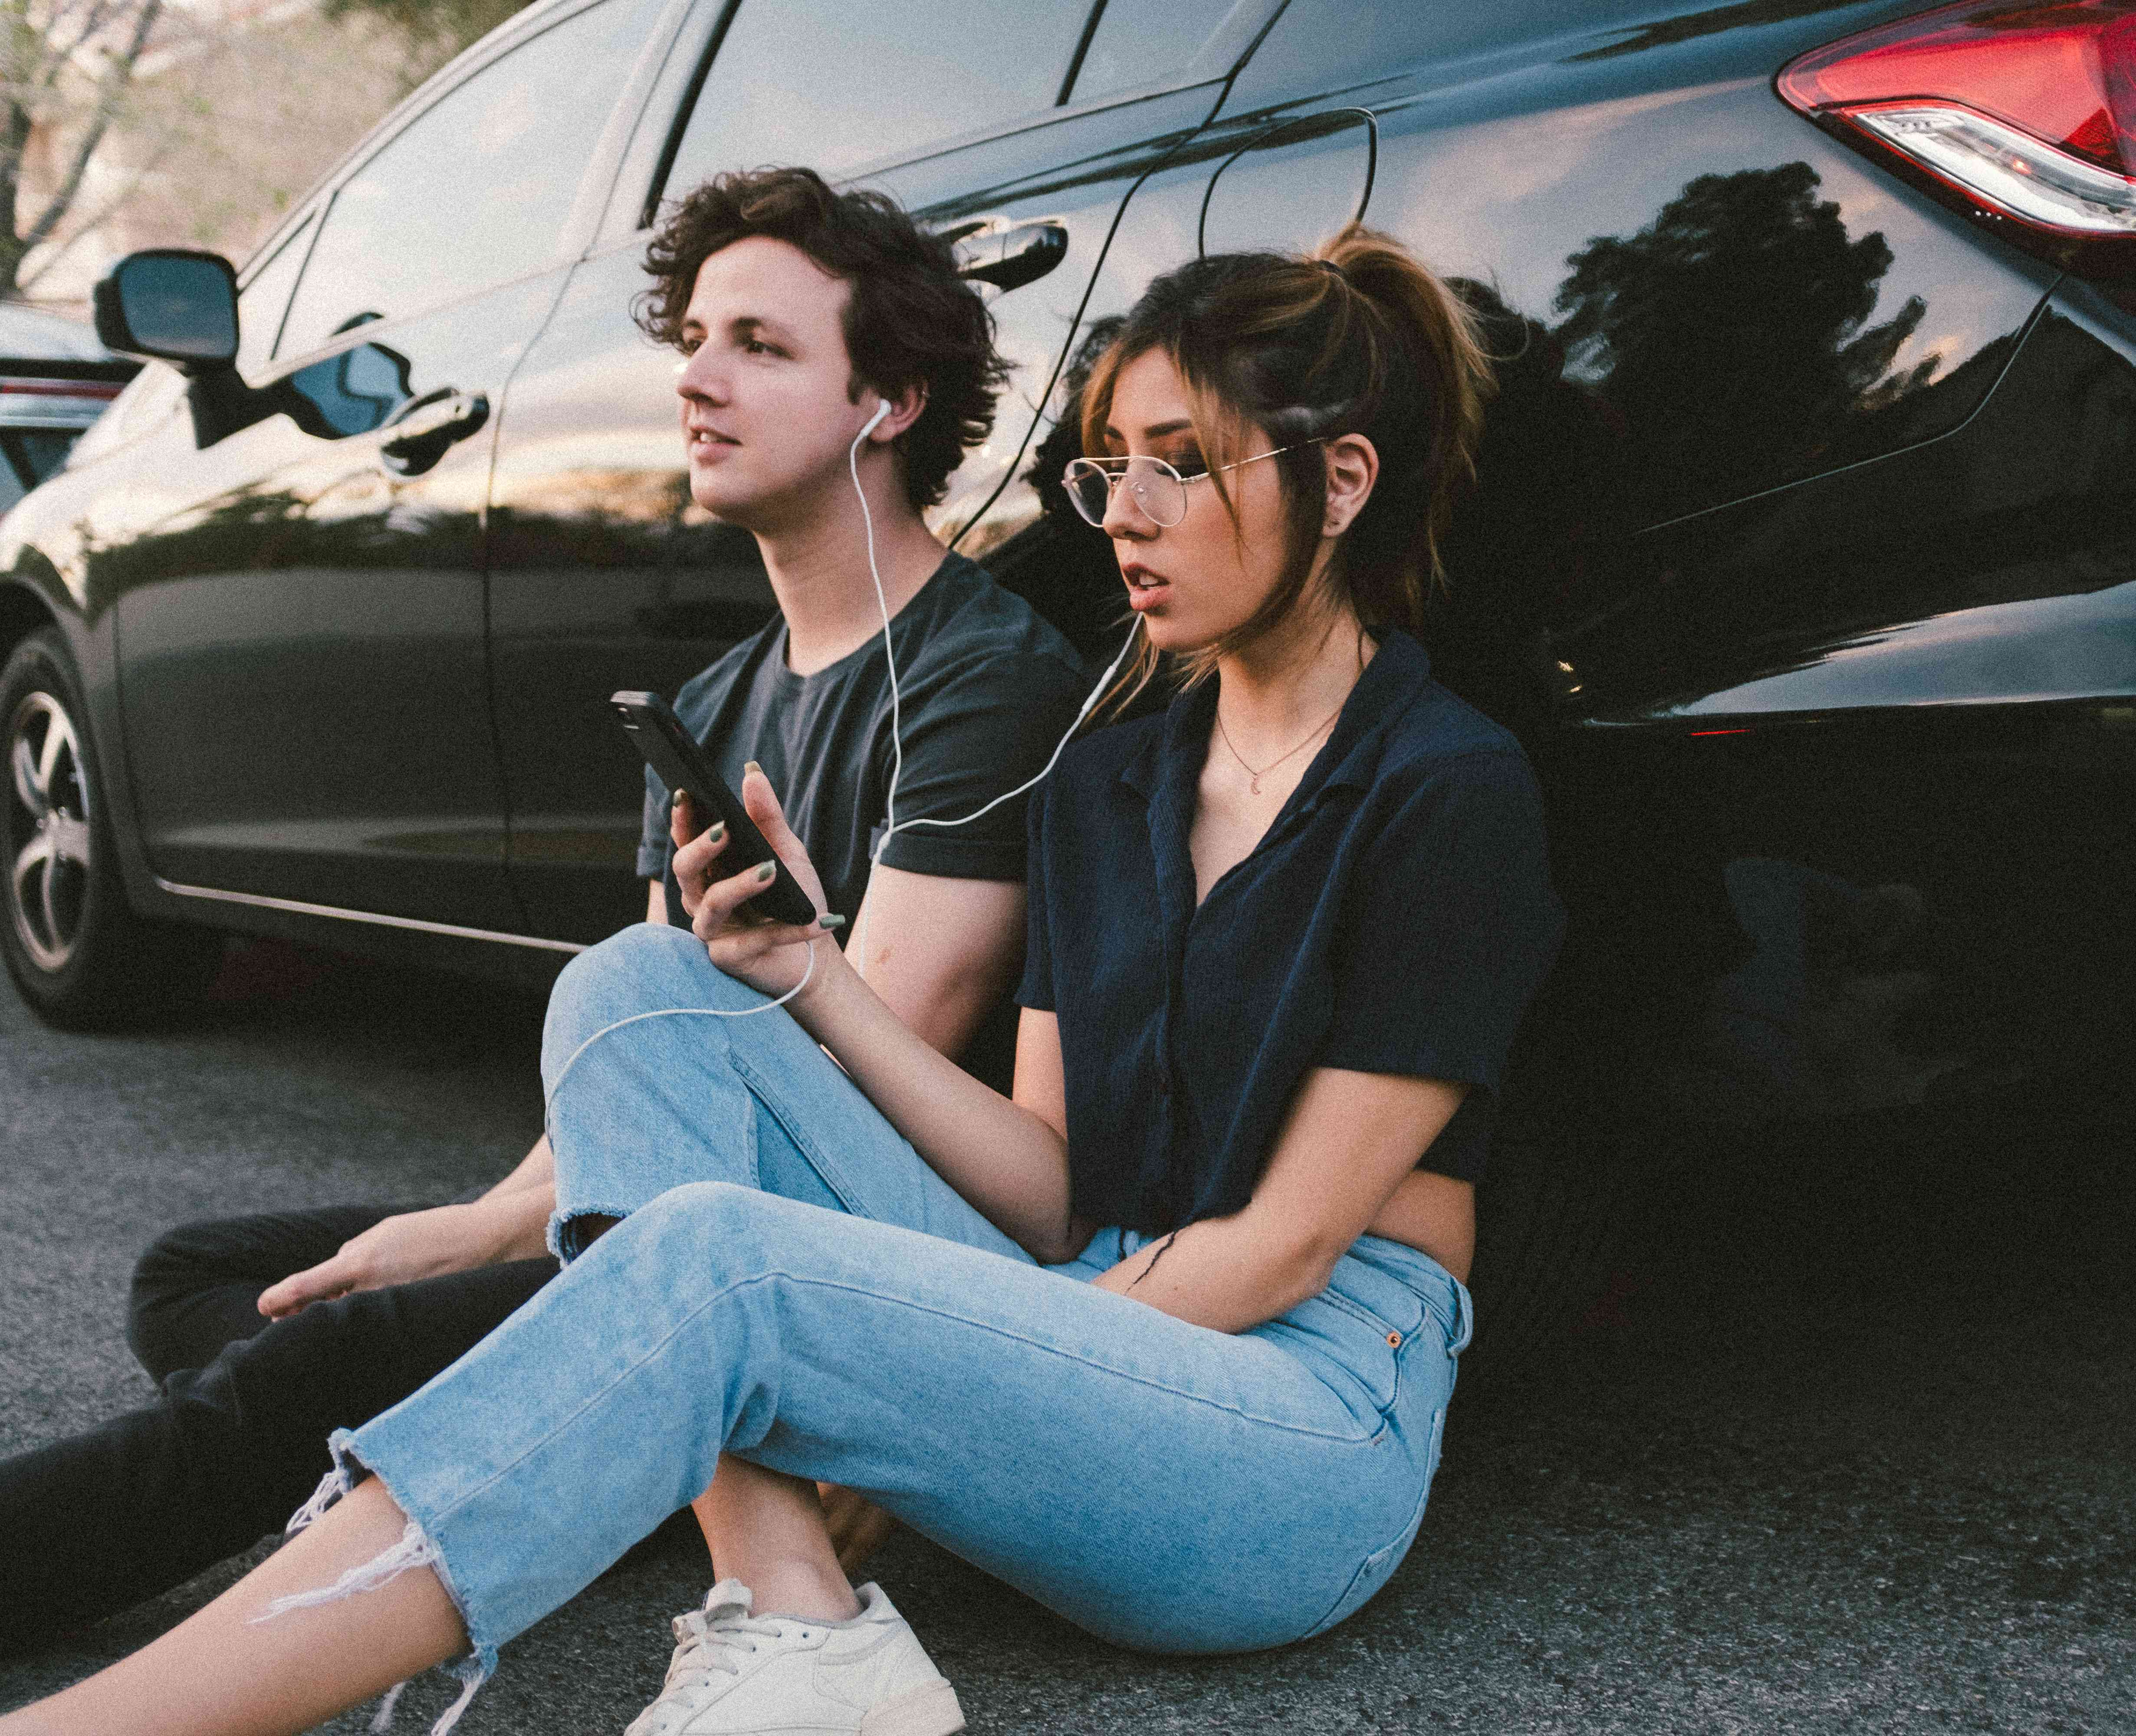 Friends sitting on the ground, leaned against a vehicle, sharing music from a smartphone with wired headphones.